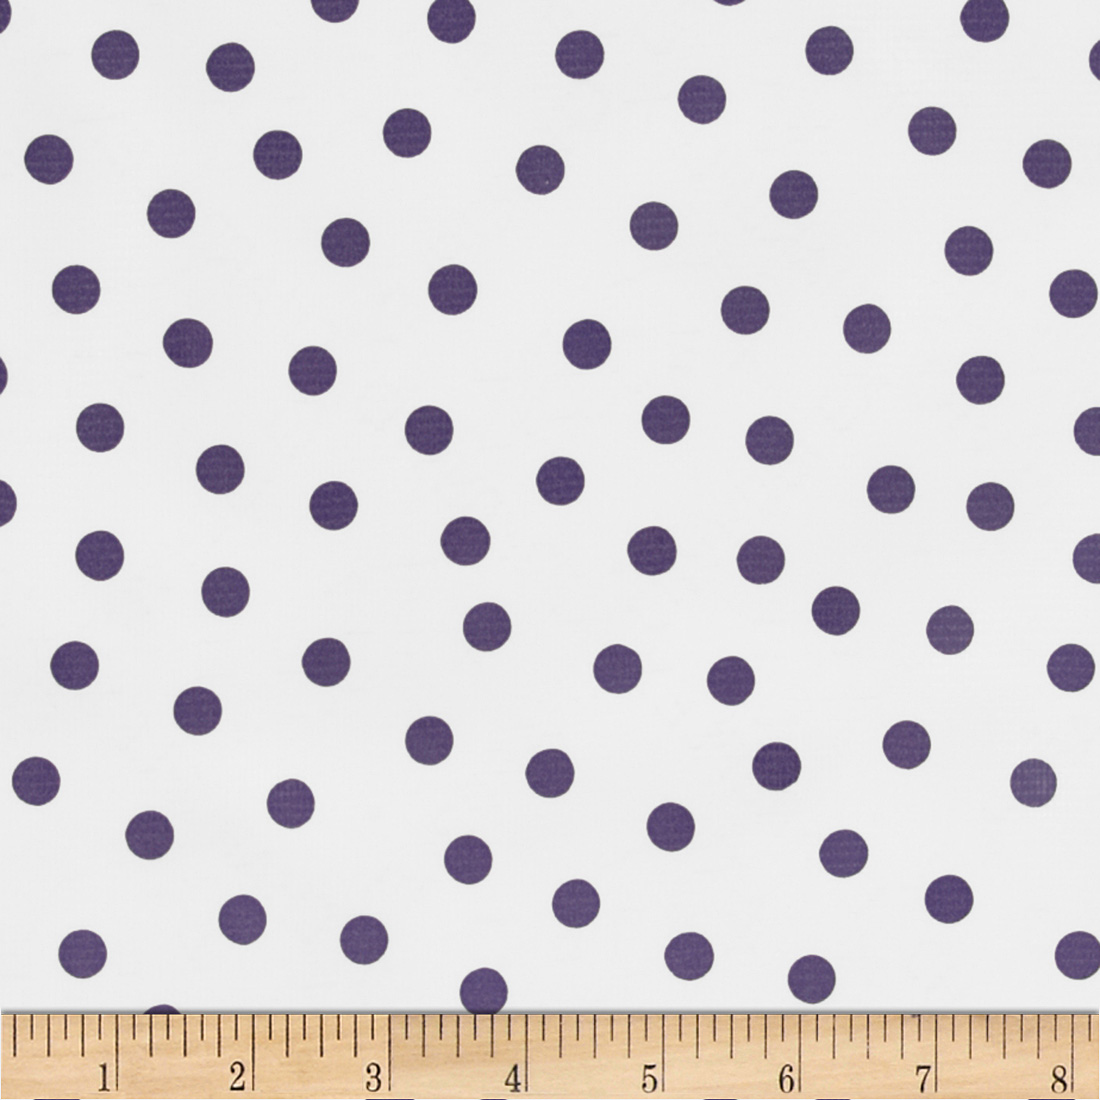 Oil Cloth Polka Dot White/Purple Fabric